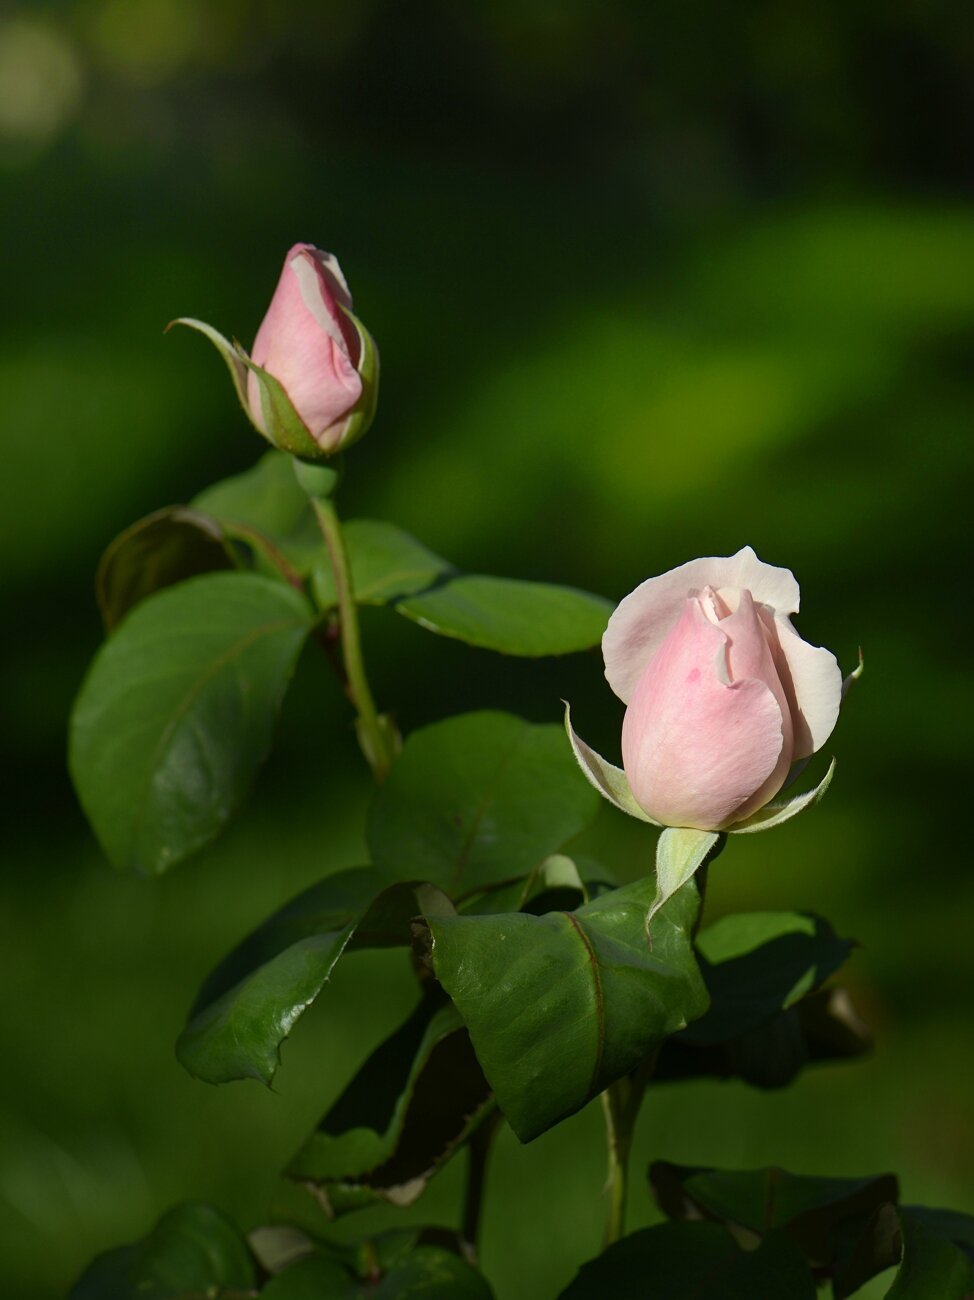 Boutons rose 1 21-11-14